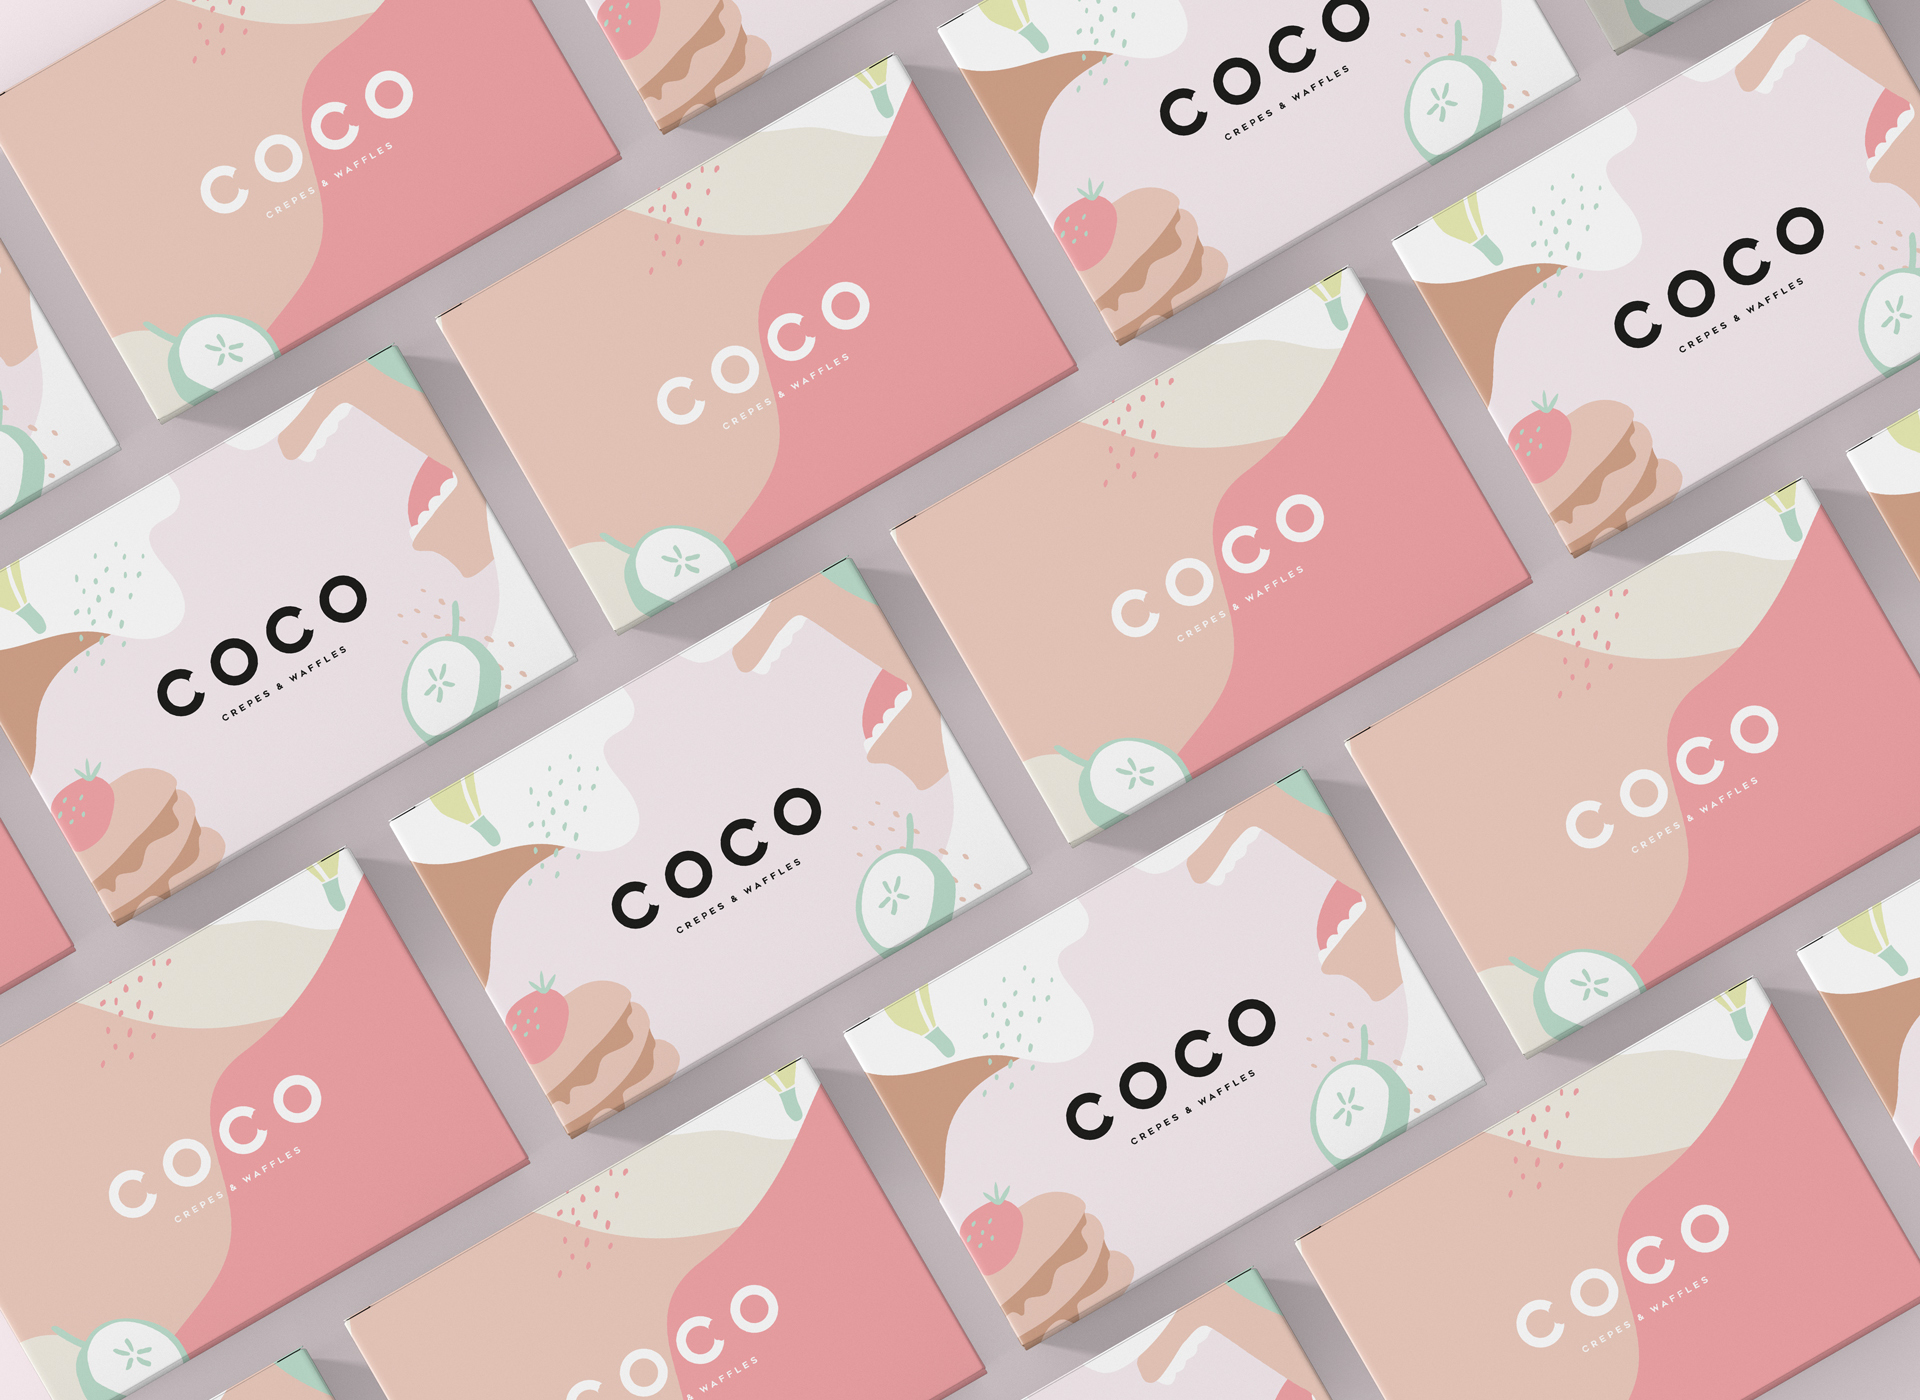 COCO Crepes & Waffles – Branding and Packaging Design